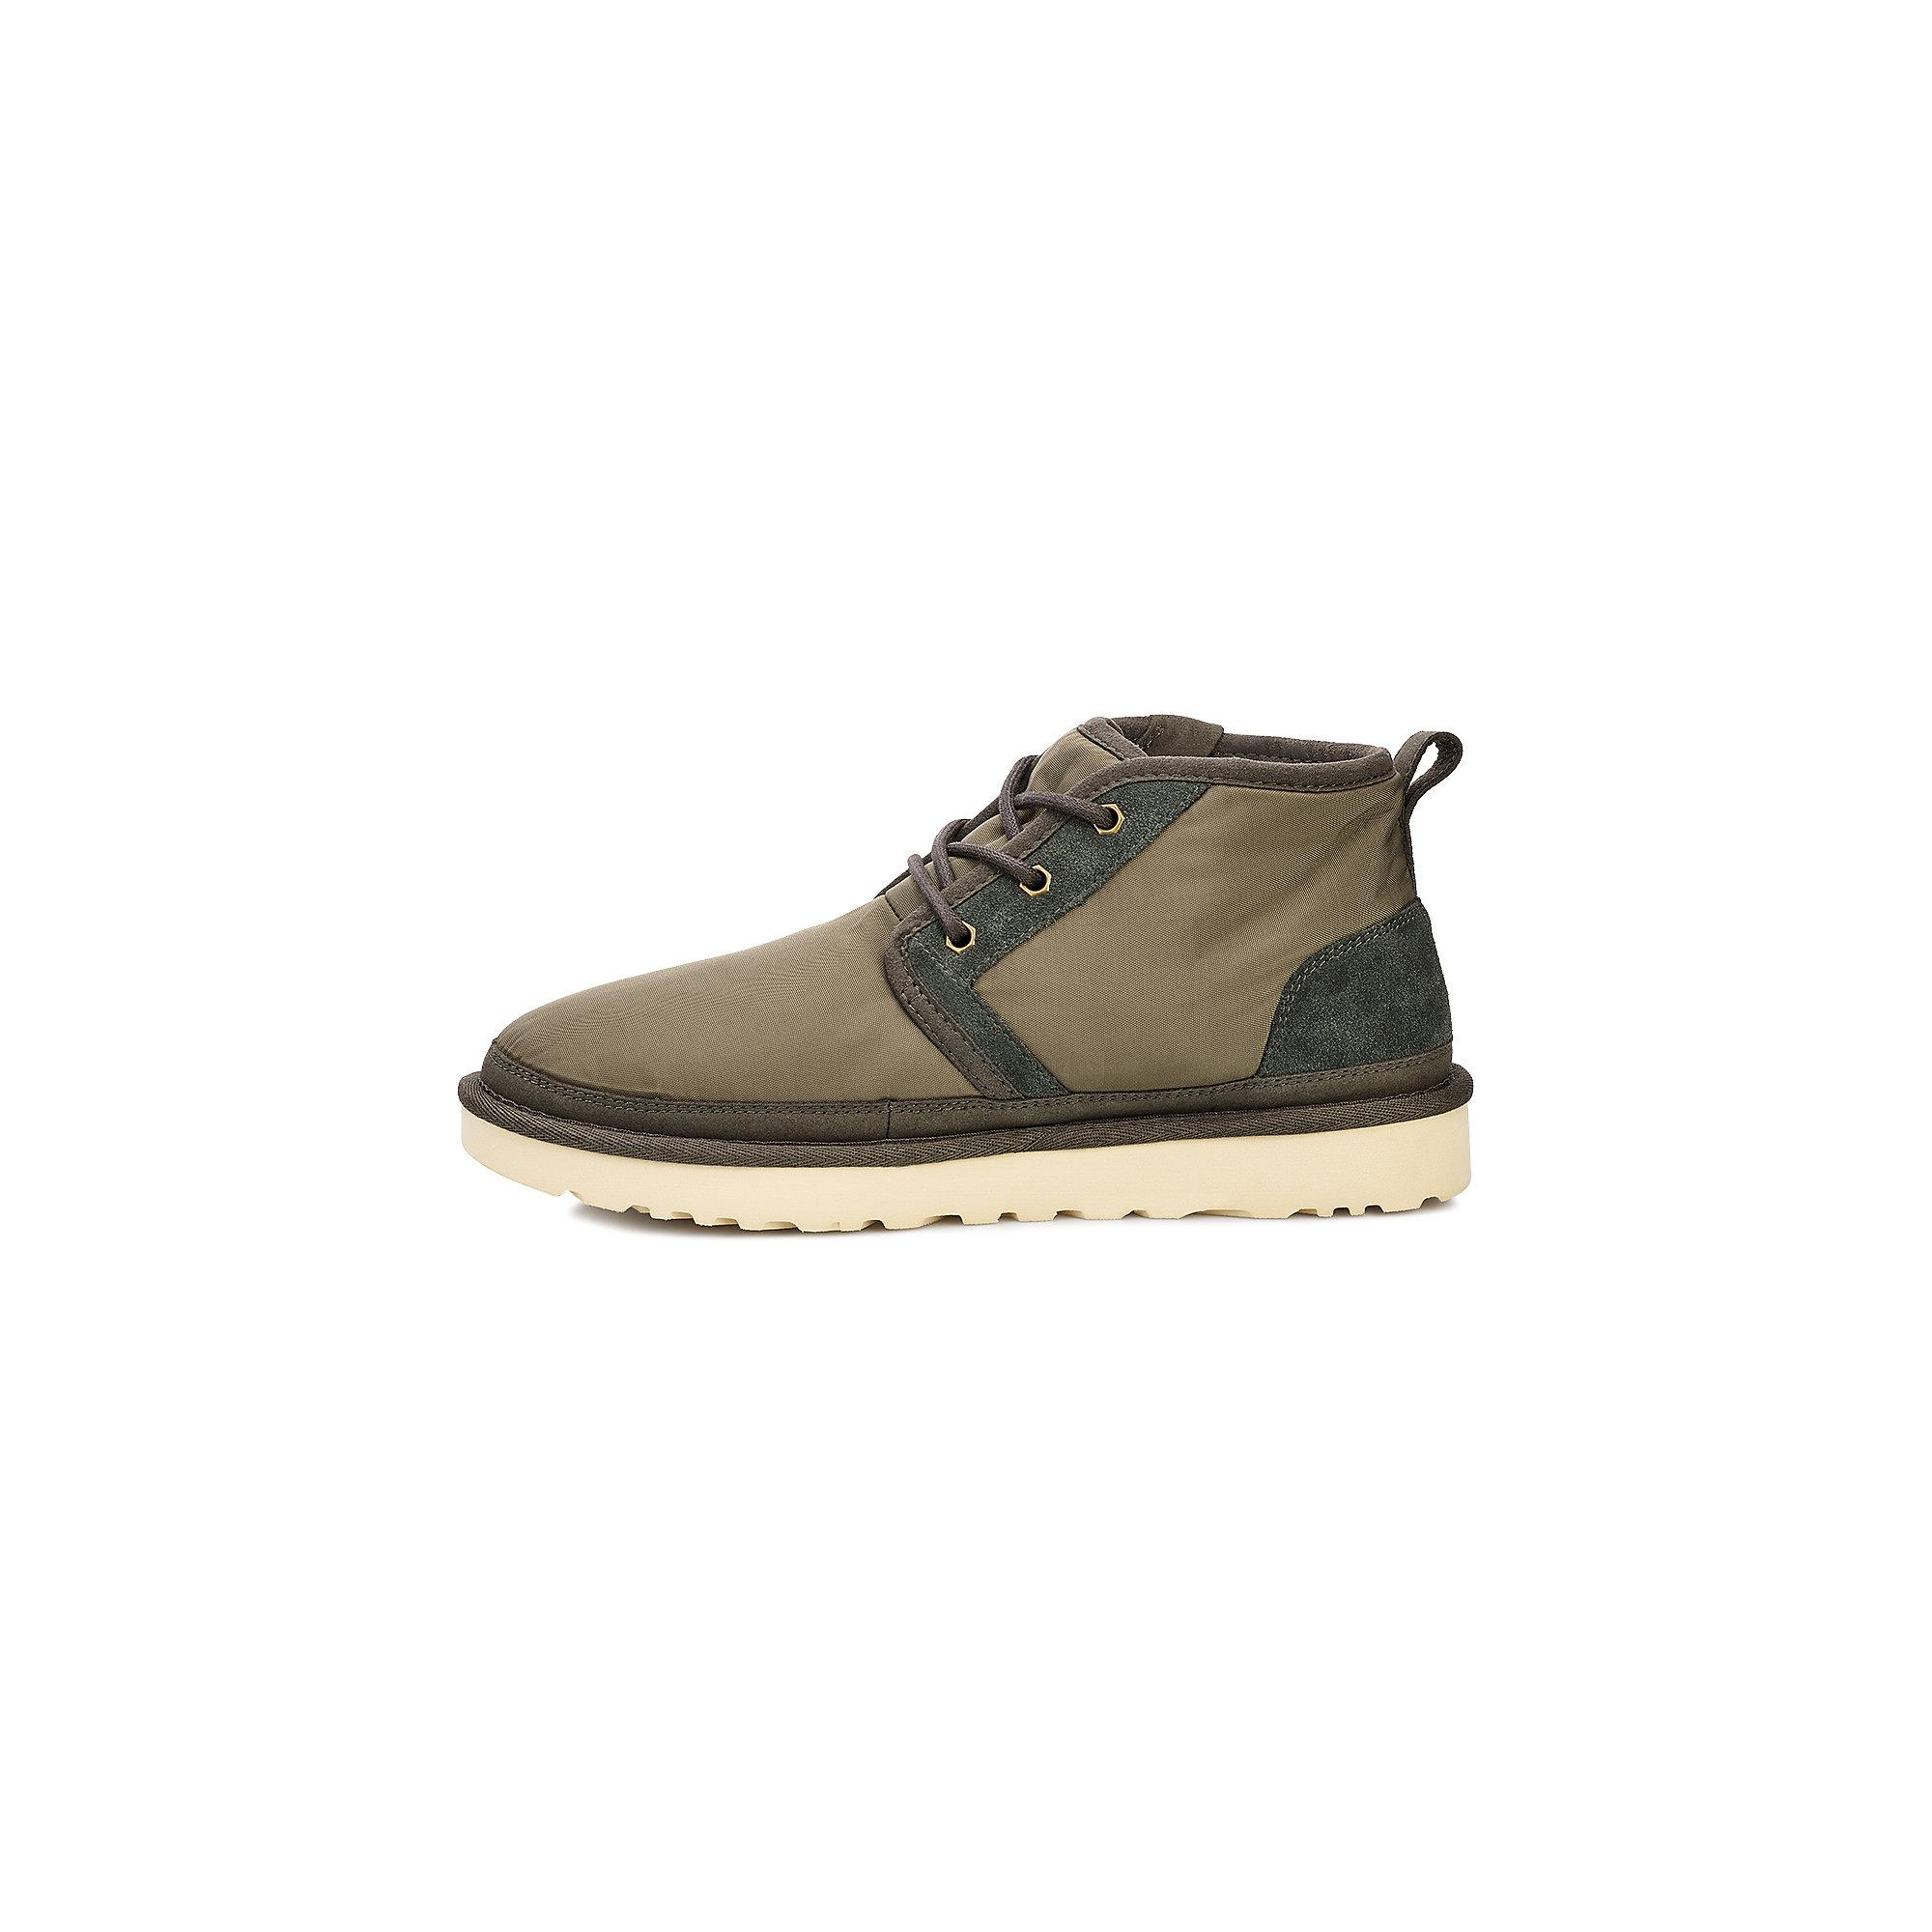 84f0e89eb UGG Ugg Neumel Chukka Boot in Green for Men - Save 1% - Lyst